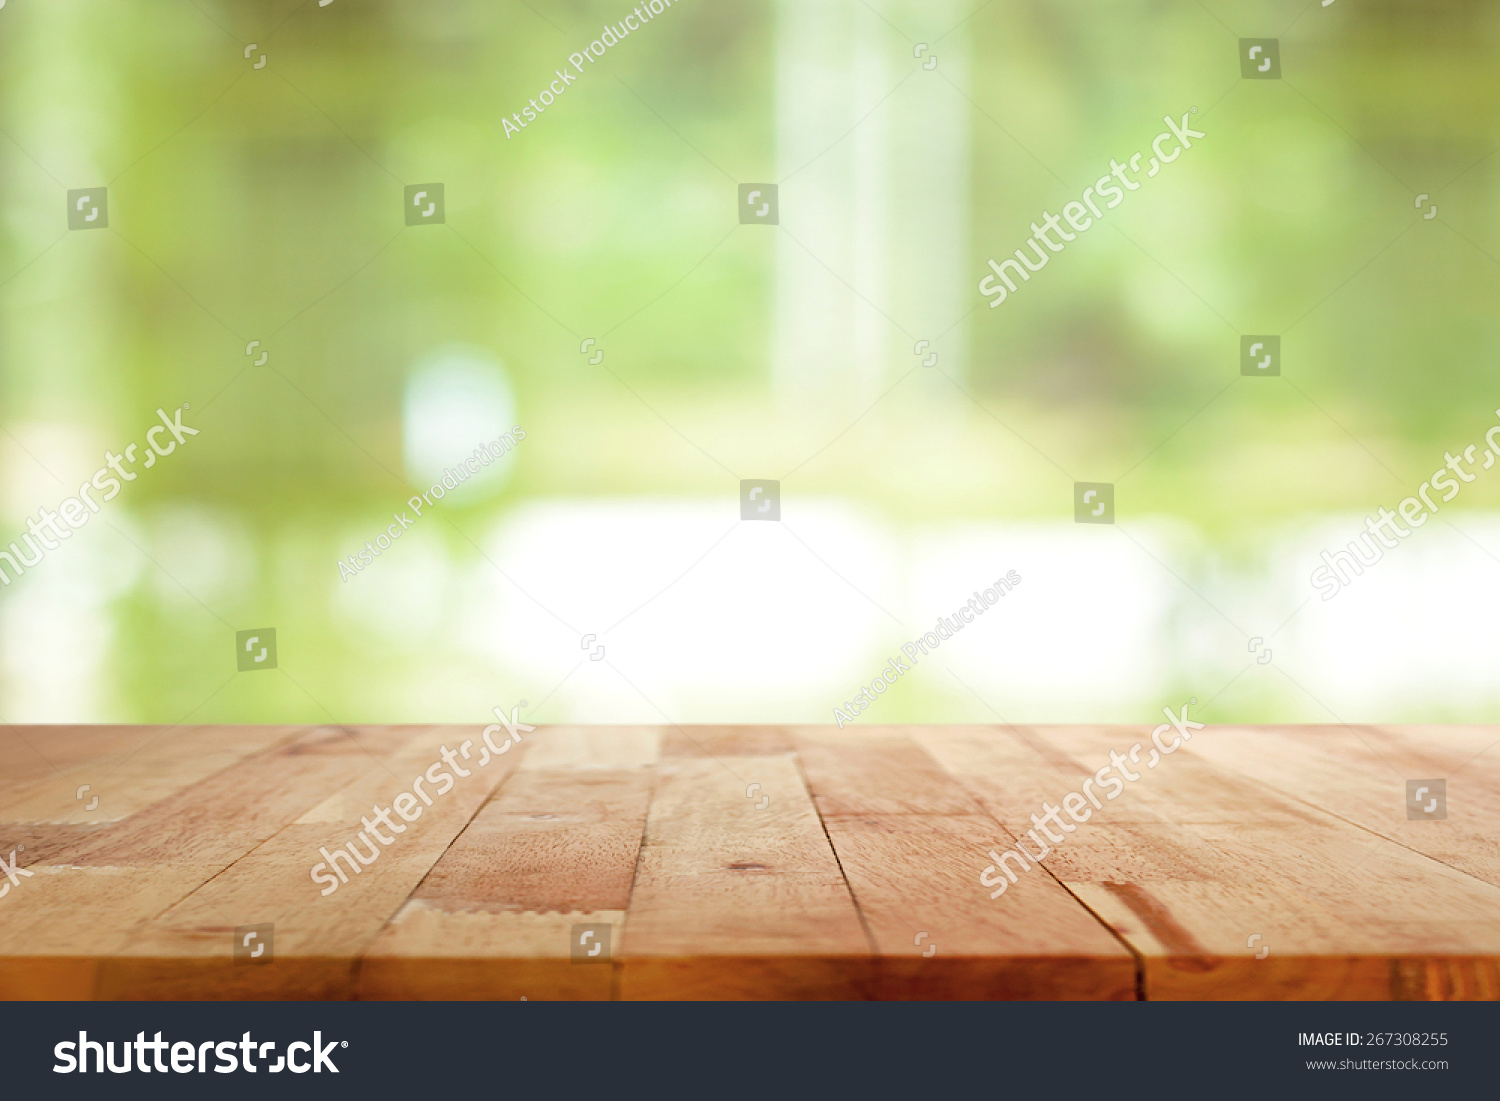 Wood table background hd - Wood Table Top On Blurred Green Background Can Be Used For Montage Or Display Your